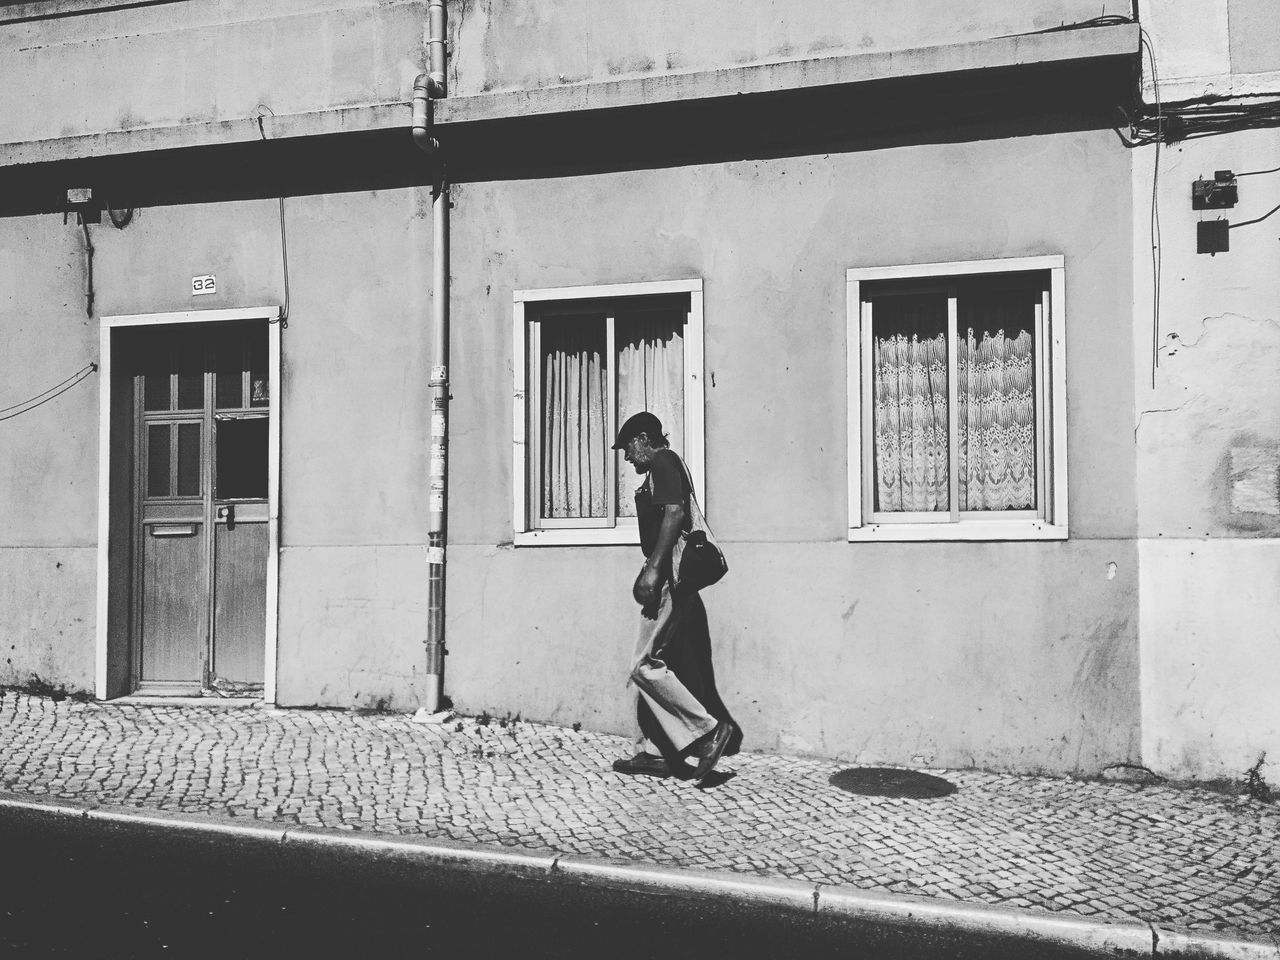 1974 Street Photography 1974 Preto & Branco